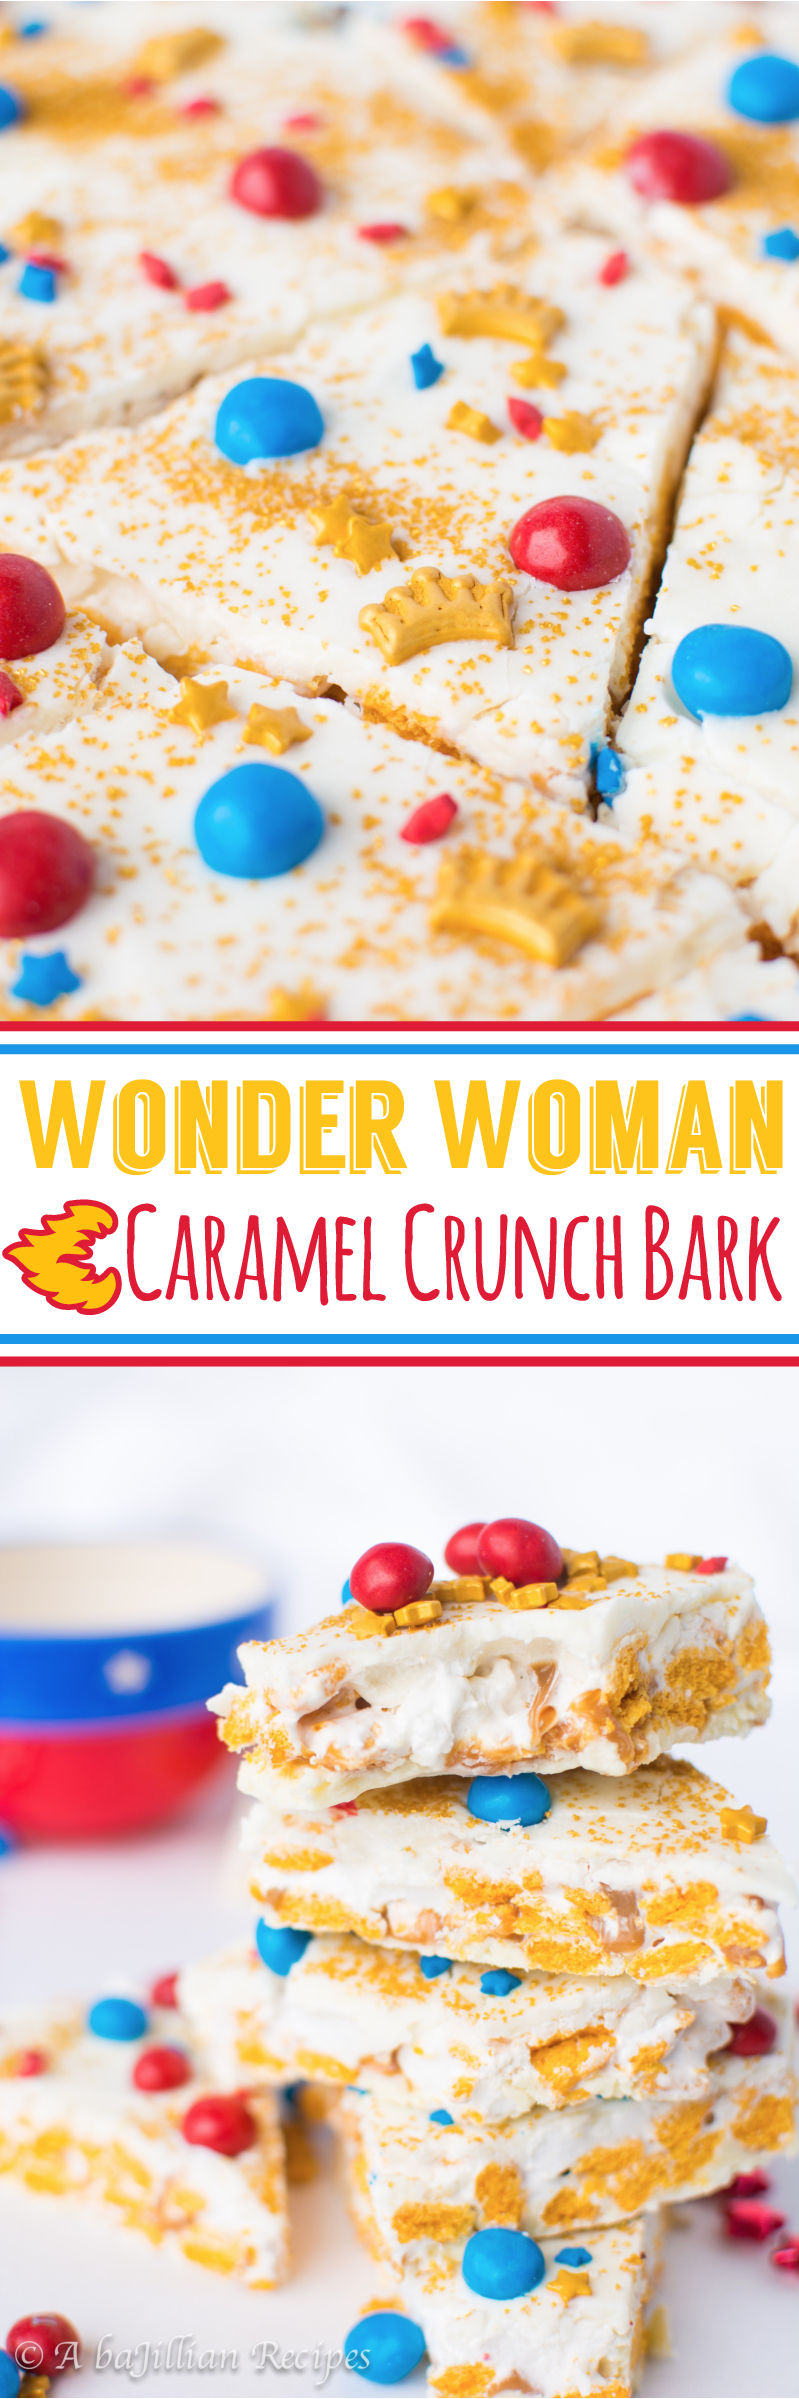 Wonder Woman Caramel Crunch Bark (collage)